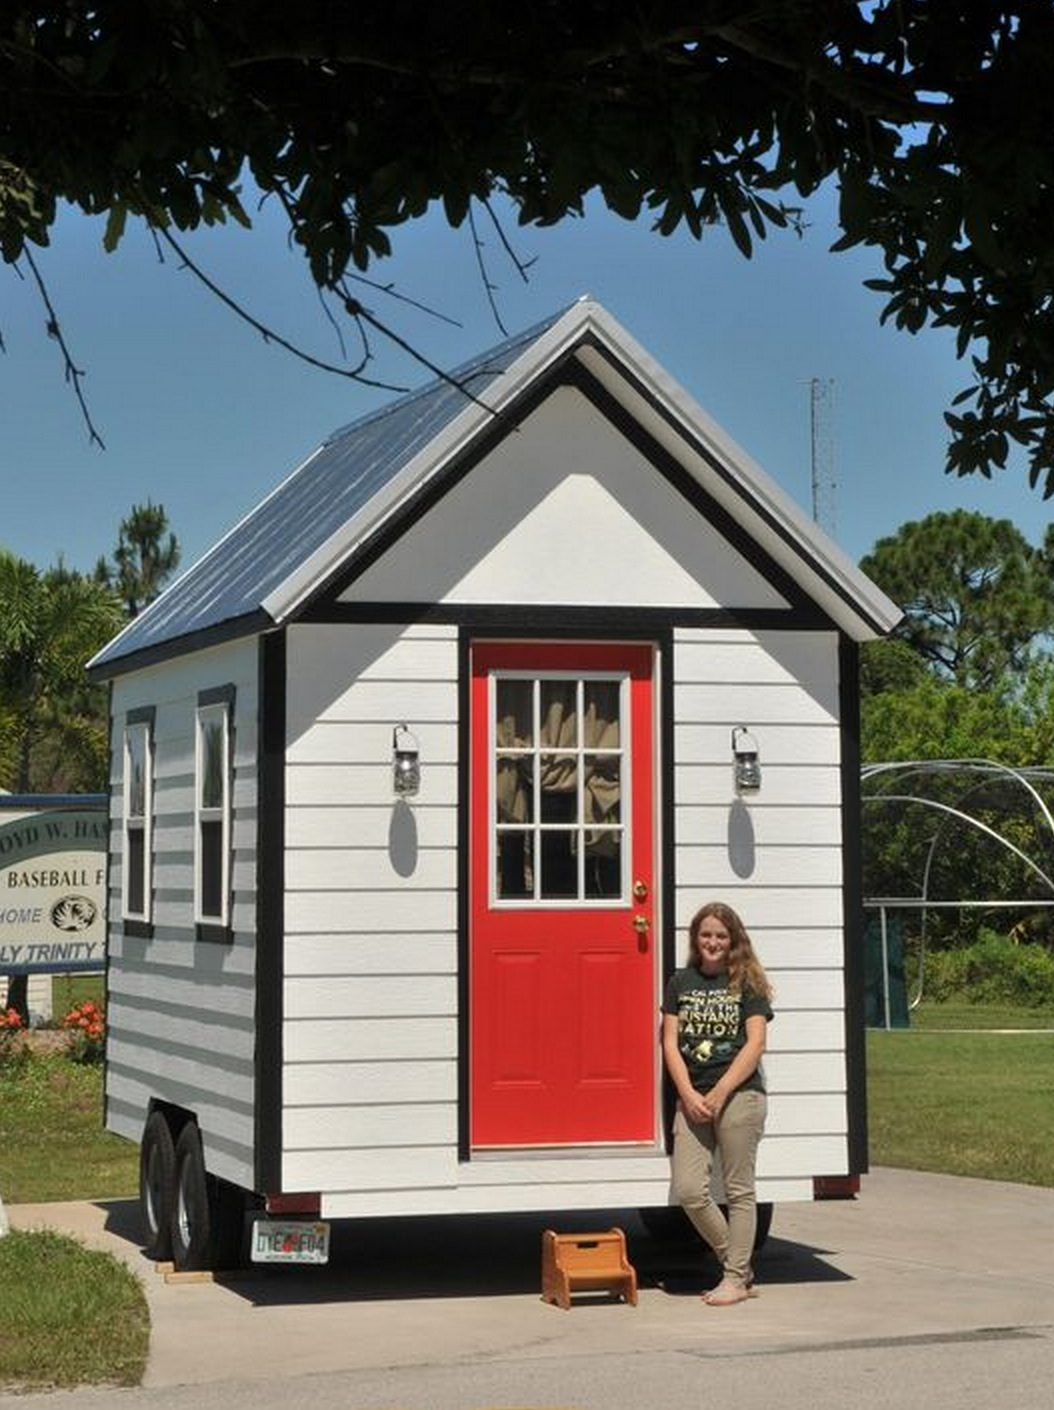 florida tiny houses alex and rosa's tiny house – tiny house swoon